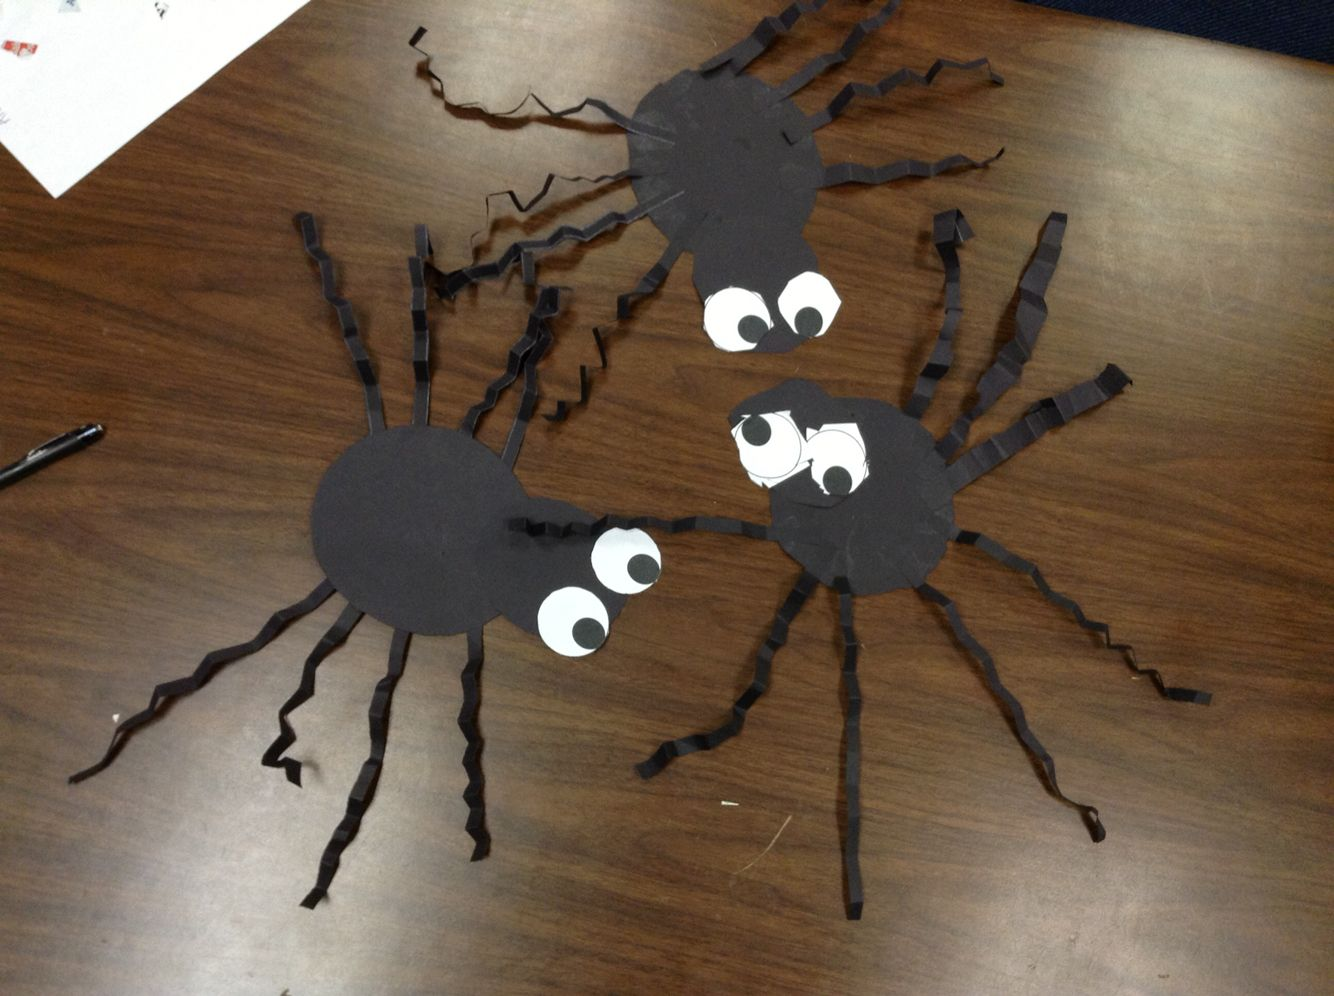 Easy spiders all construction paper and just folded the legs all construction paper and just folded the legs library eventshalloween projectsconstruction jeuxipadfo Choice Image